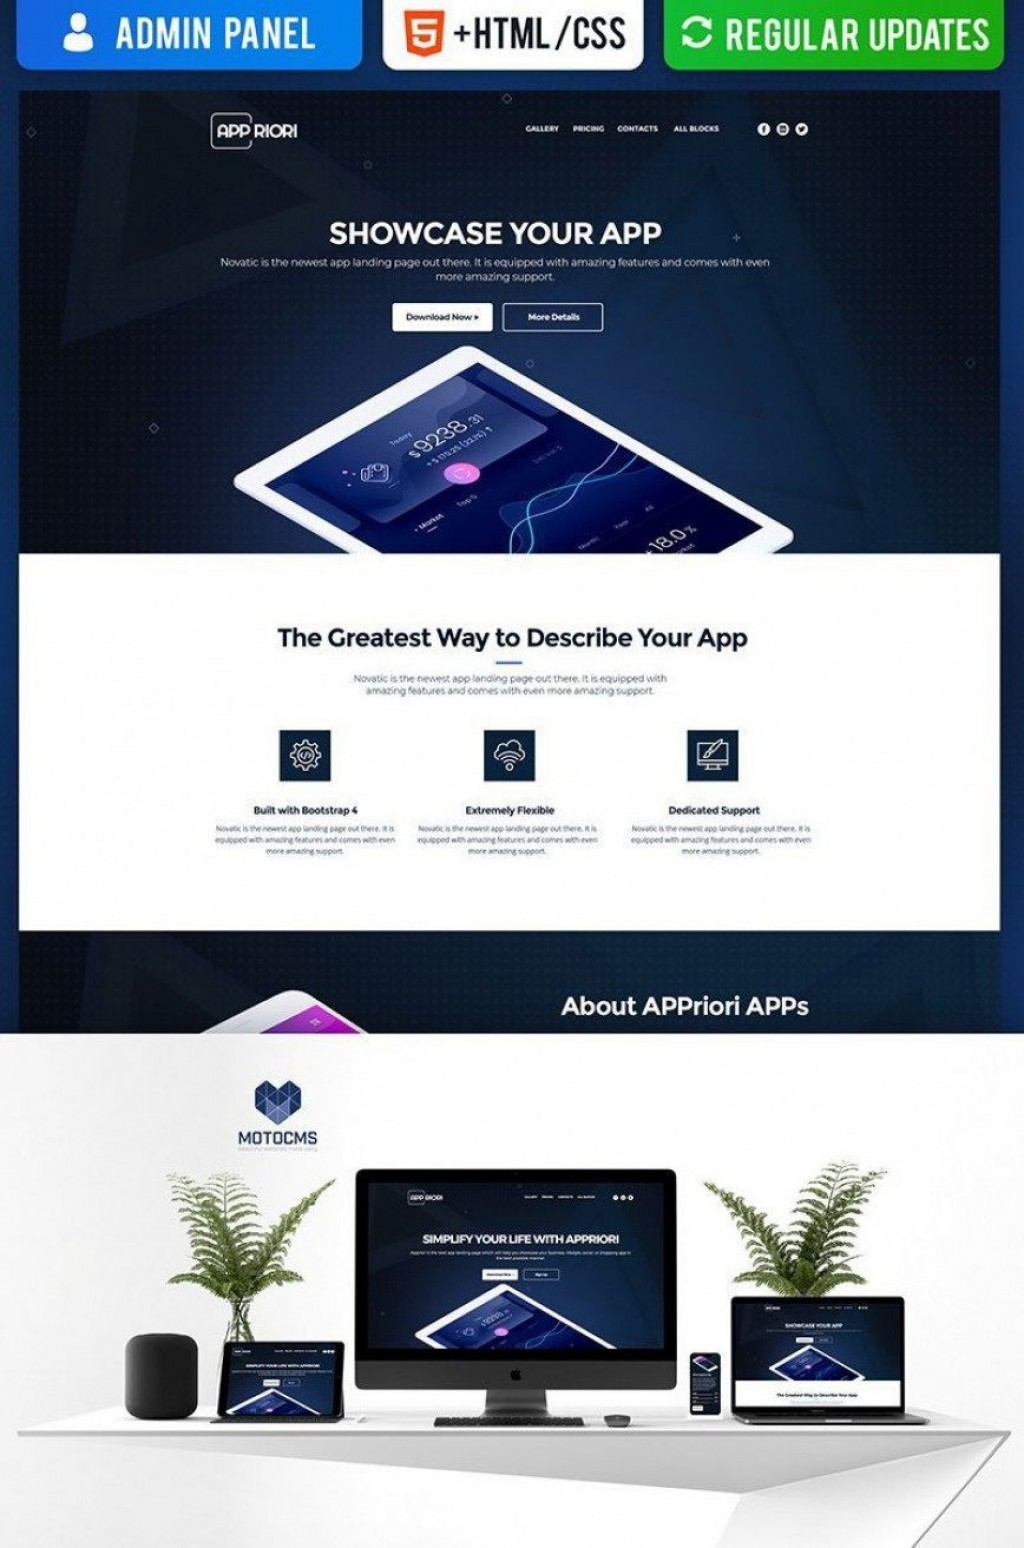 006 Excellent Csvape Esponsive Mobile App Landing Page Html Template Free Download High Definition  Csvape-responsive-mobile-app-landing-page-html-templateLarge